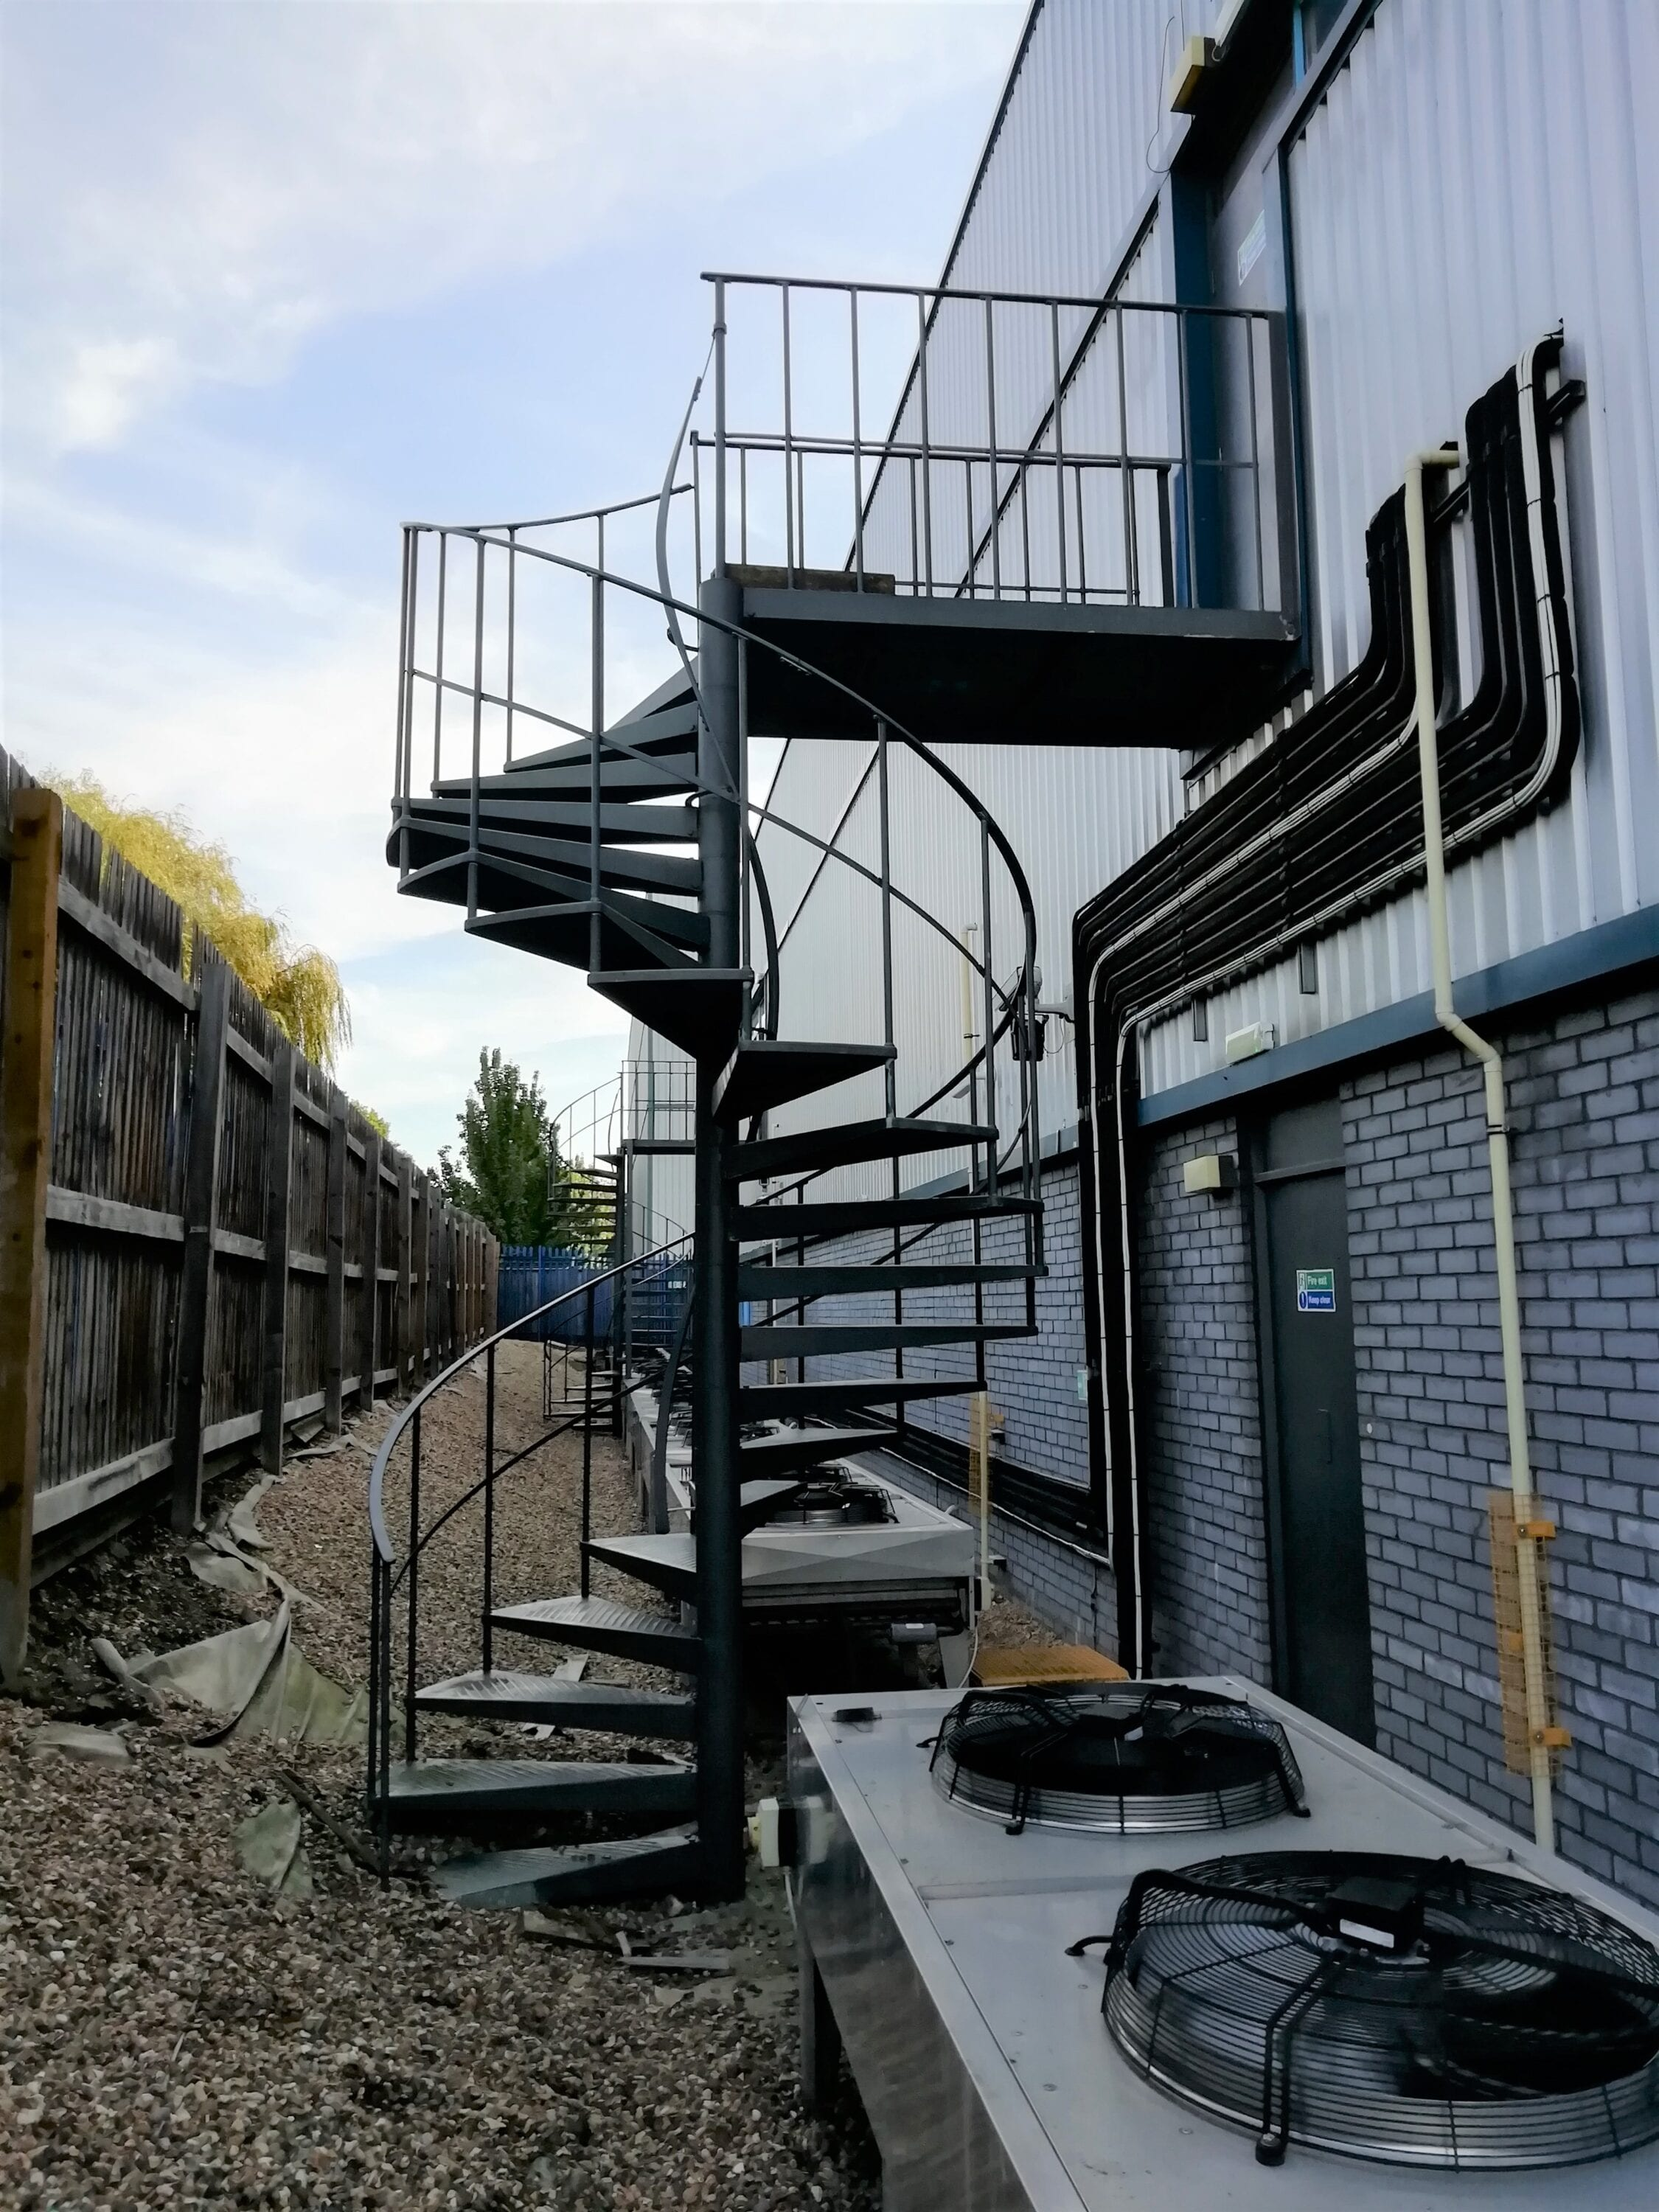 Inspection of 2 fire escapes in Maidenhead, and 1 fire escape in Croydon 1